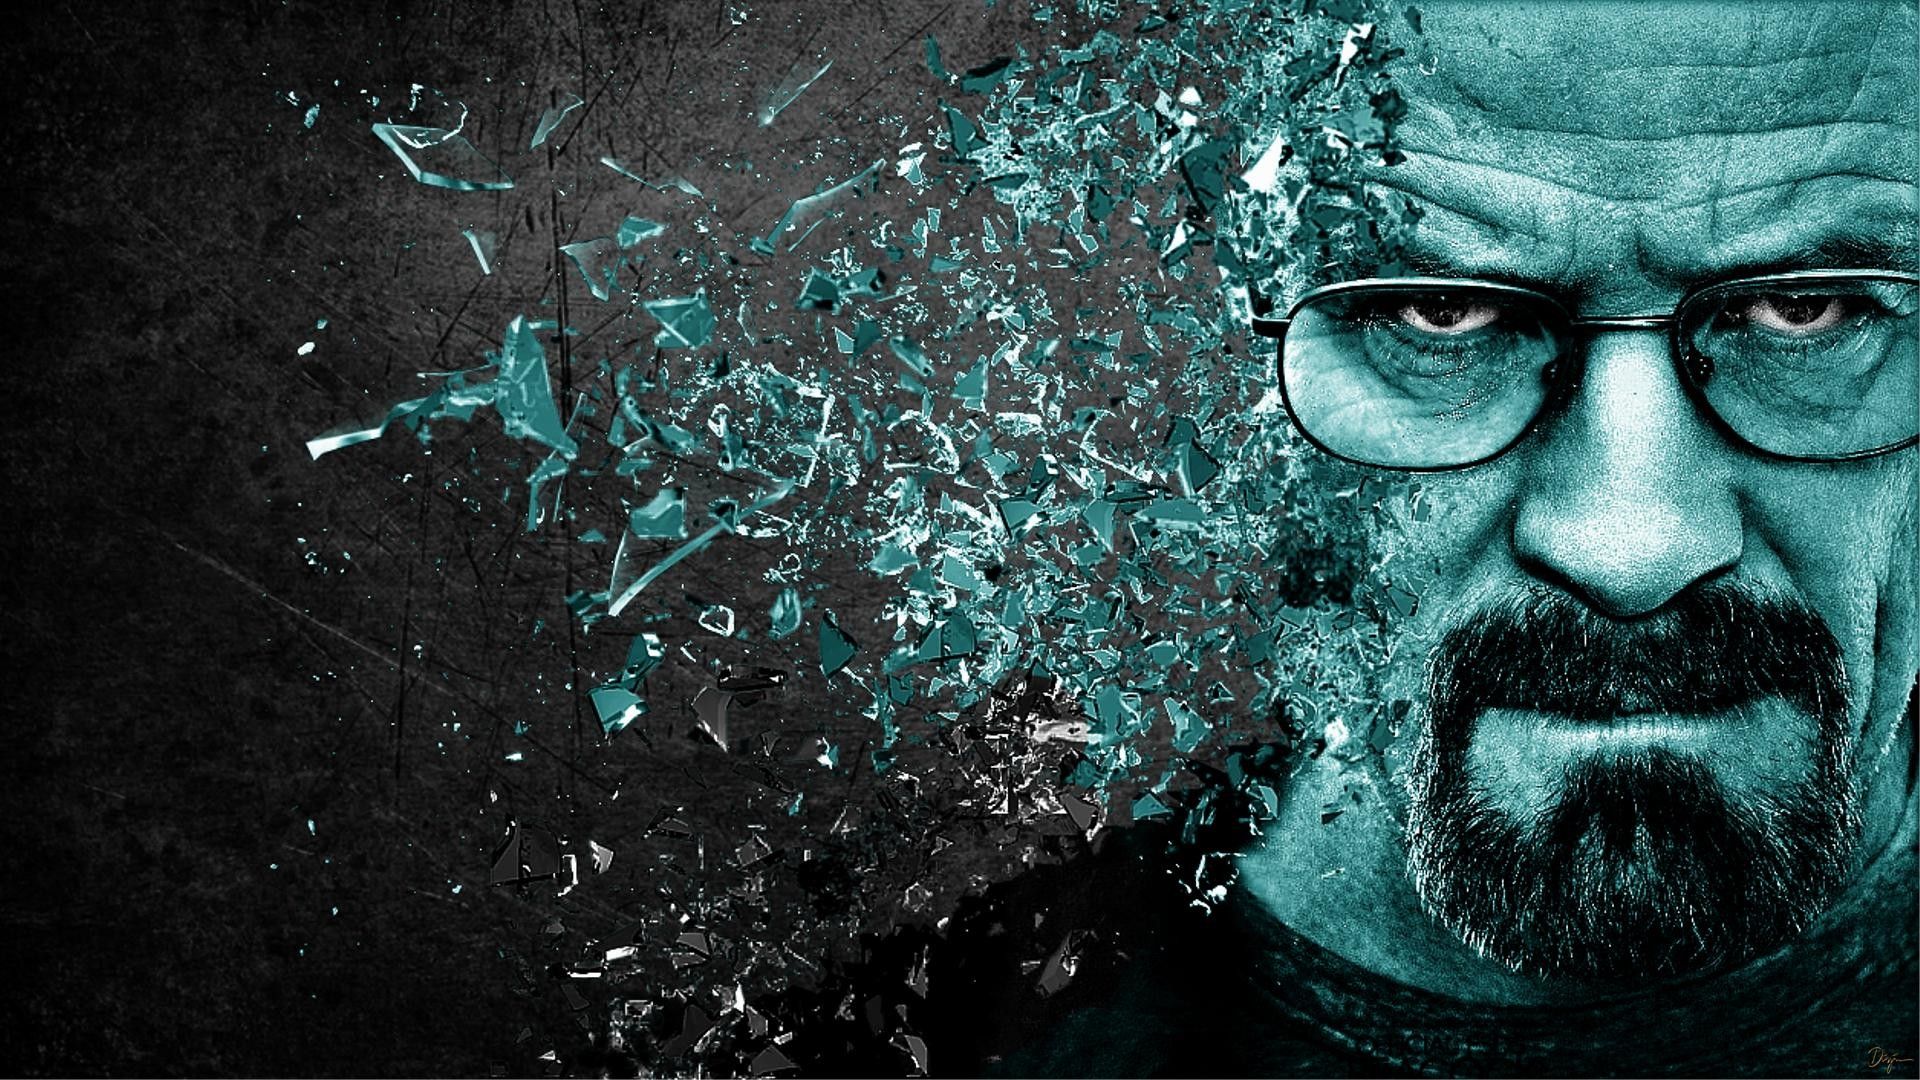 1920x1080 8. breaking-bad-wallpaper-High-Resolution-Download4-600x338